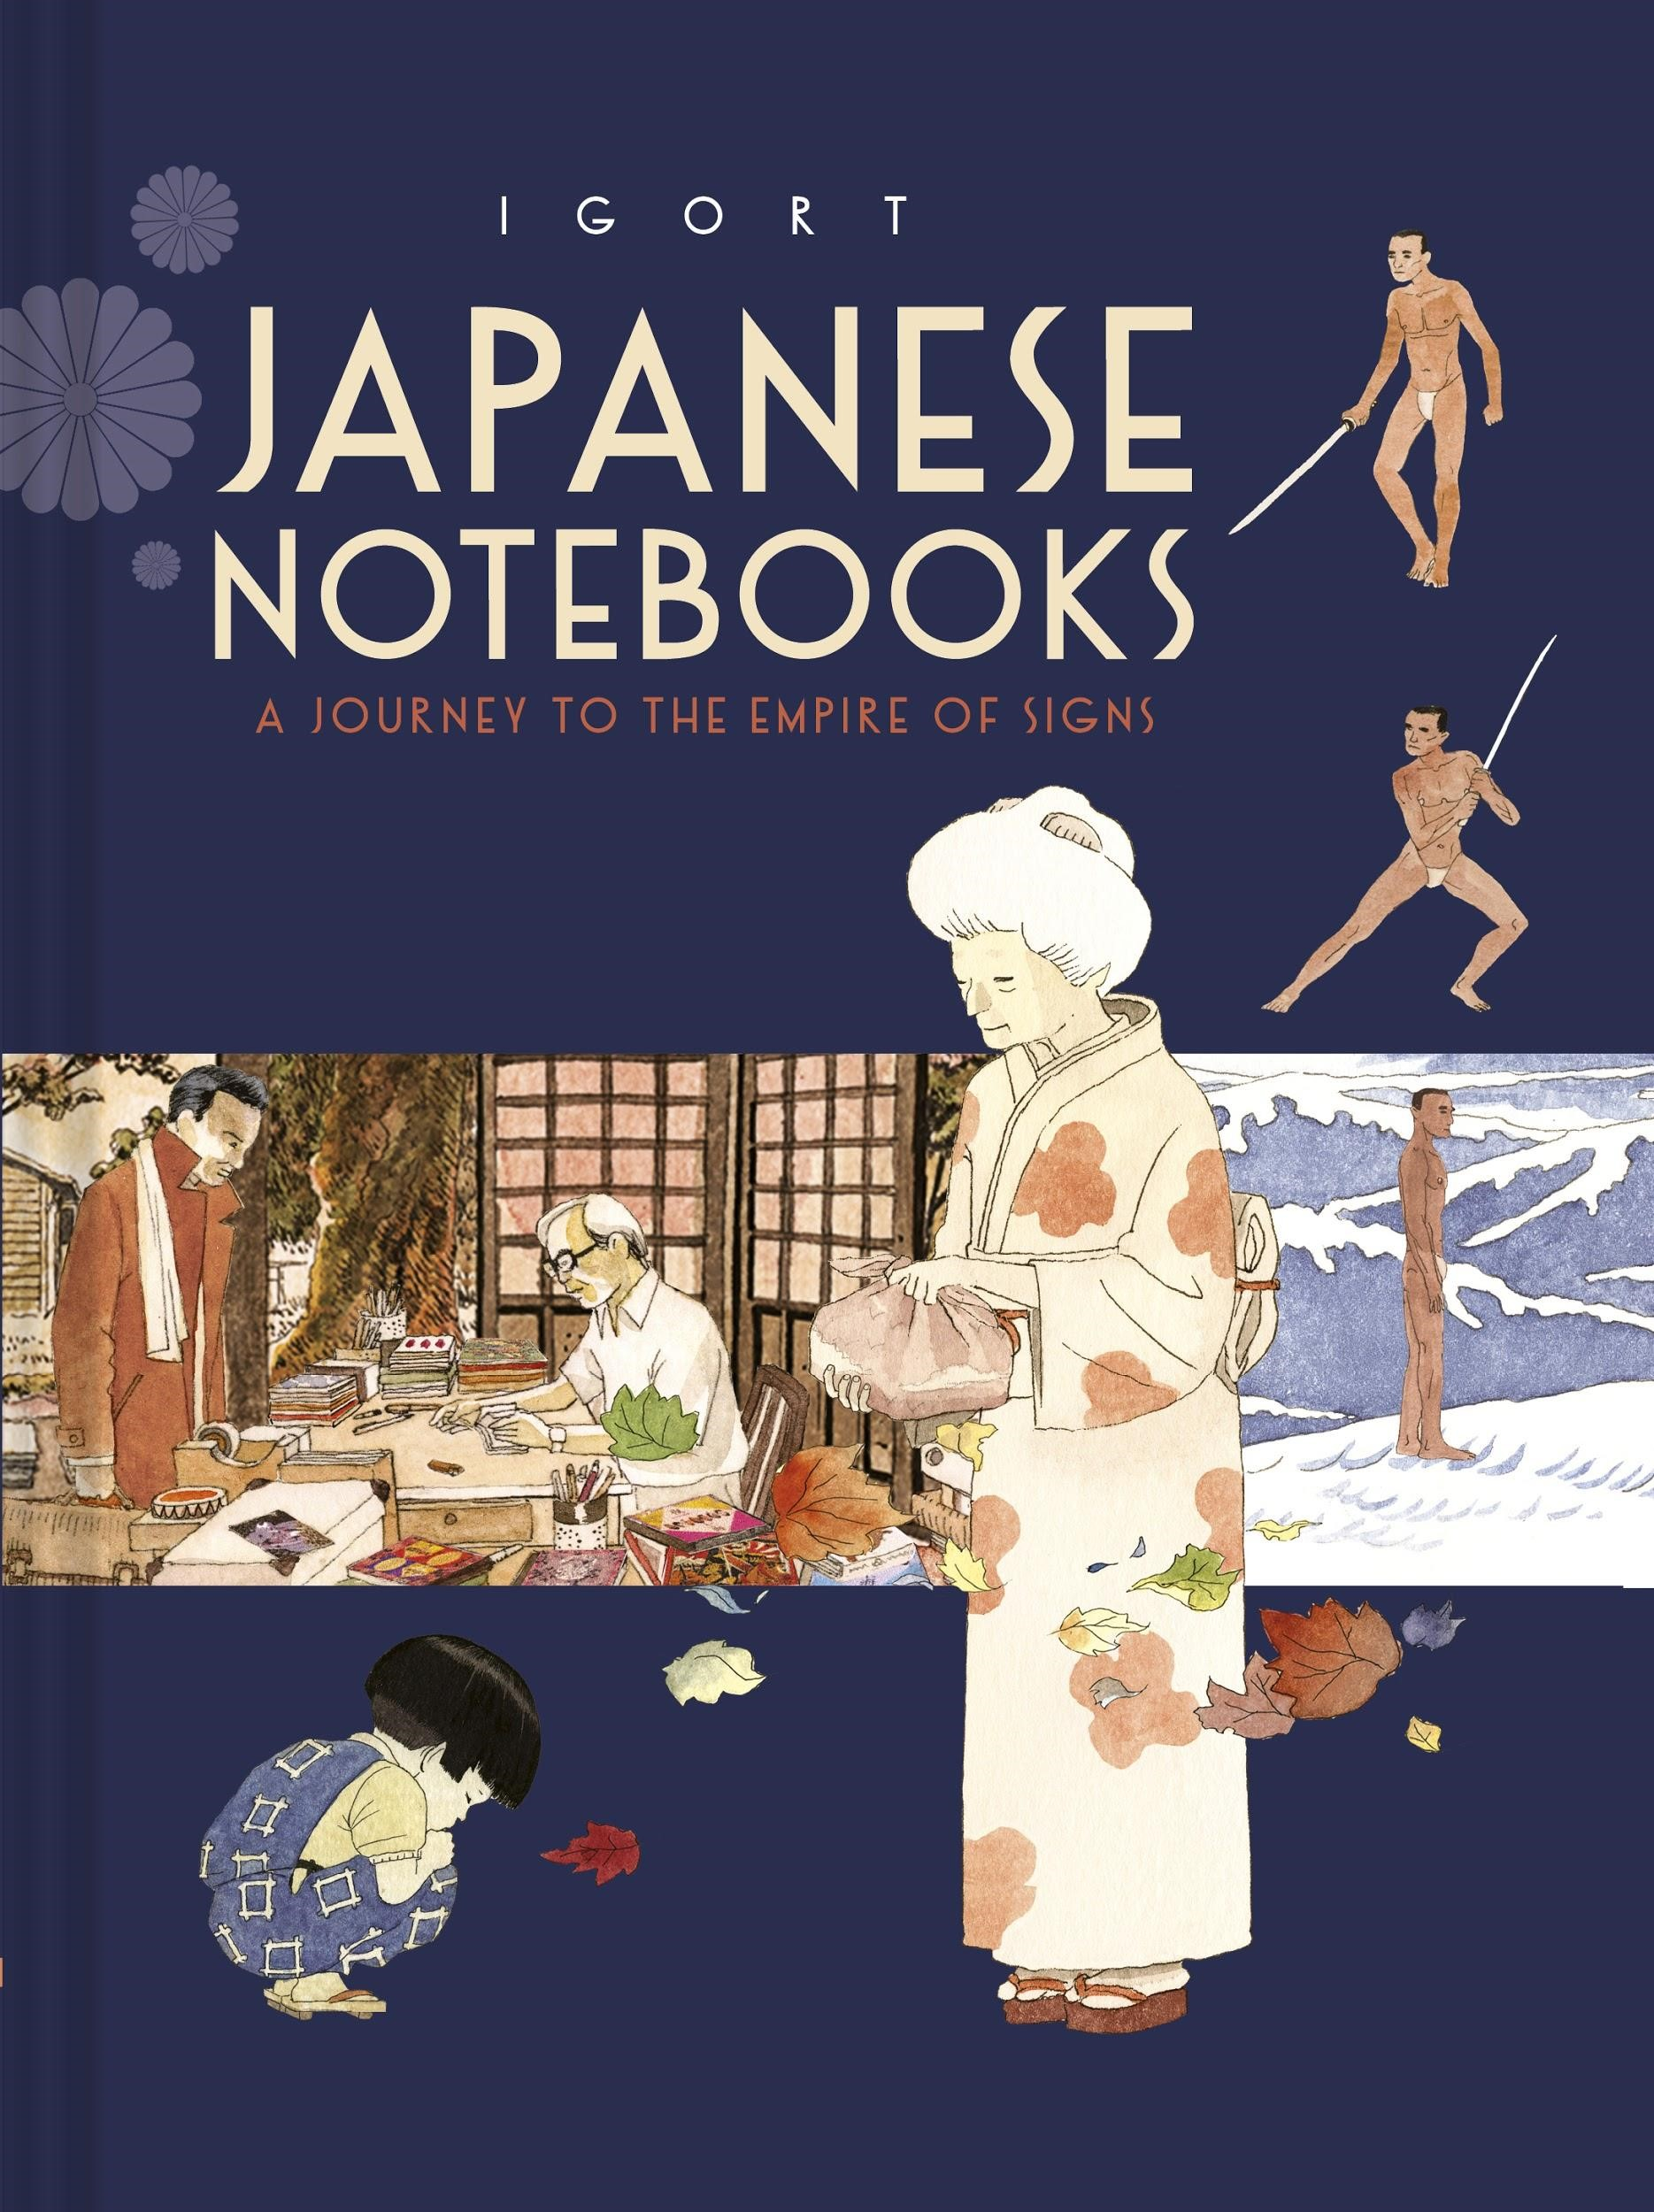 Japanese Notebooks book cover